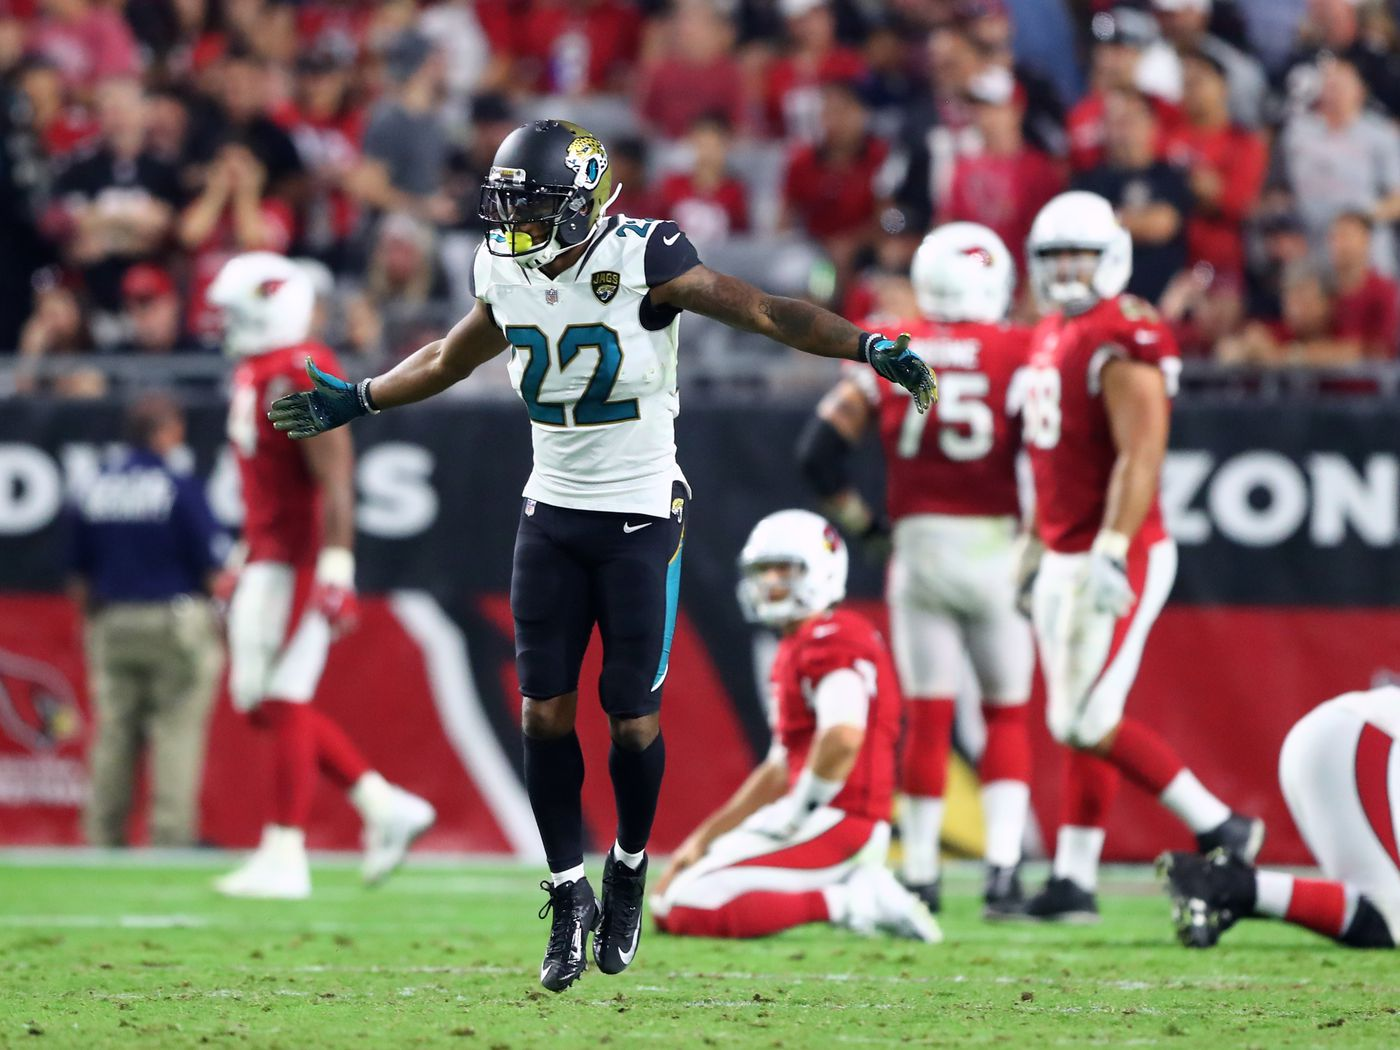 Saints secondary could see Aaron Colvin as its missing piece ...